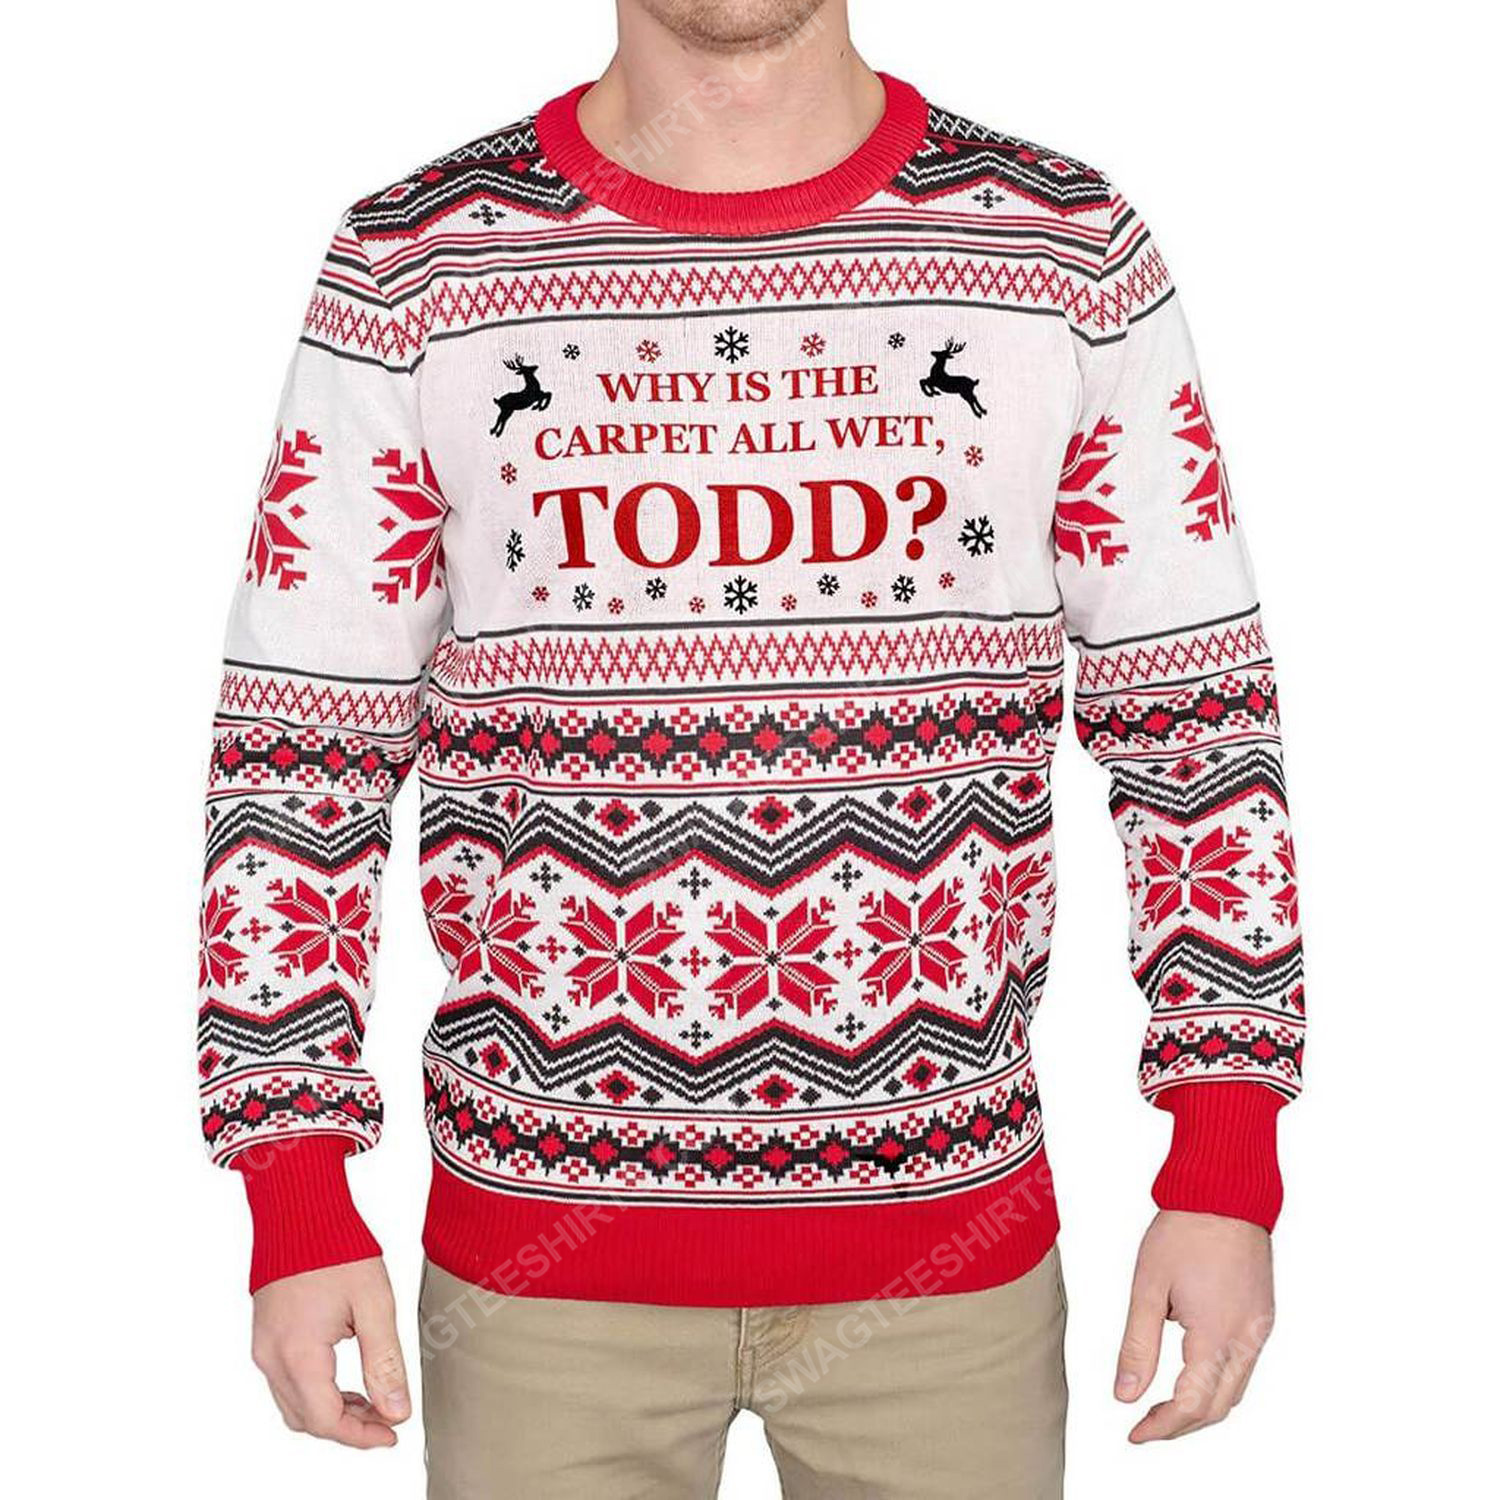 Why is the carpet all wet todd full print ugly christmas sweater 2